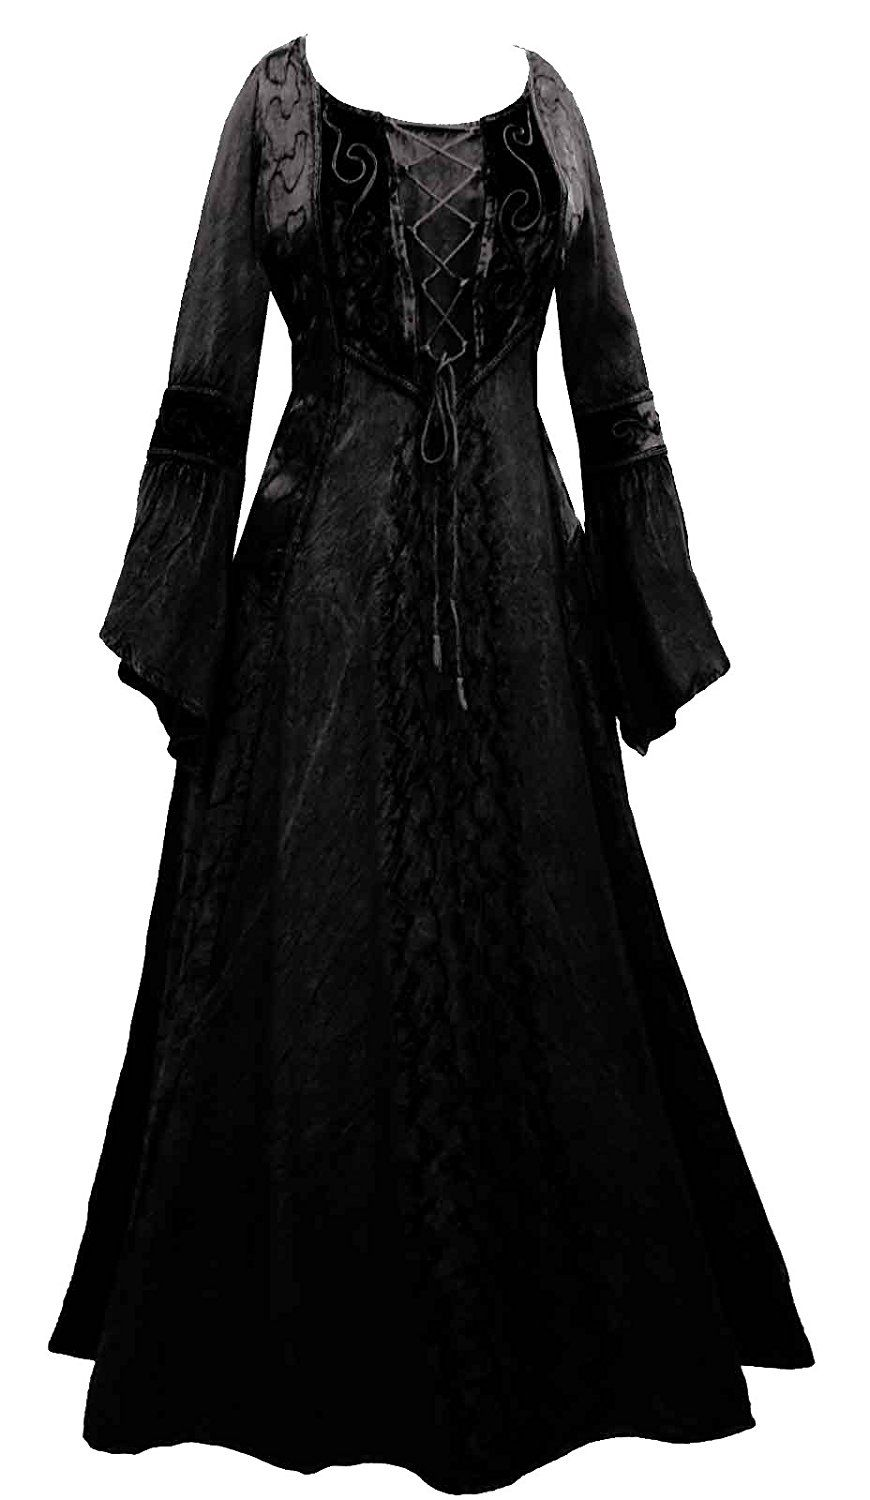 af8fcecda3d Long Black Medieval Princess Dress 10 12 14 16 18 20 22 24 26 28 30 32 Plus  Size Goth Gothic Occult Fancy Skirt Corset Velvet Witch (10 12)   Amazon.co.uk  ...